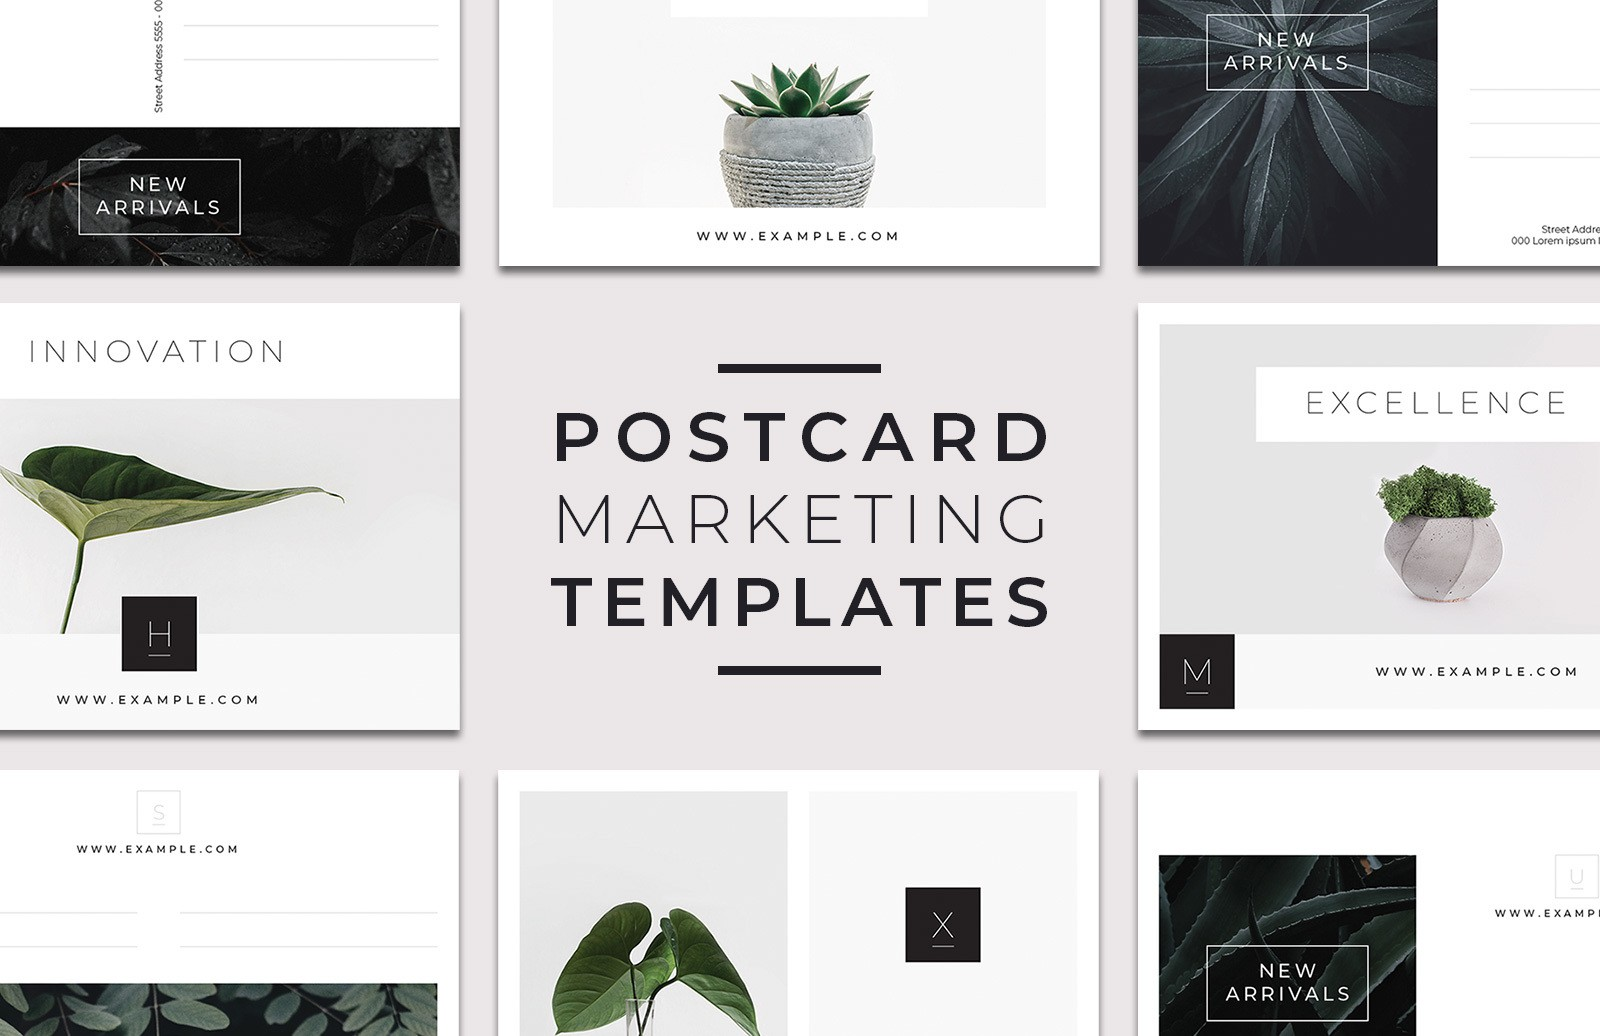 Postcard Marketing Templates